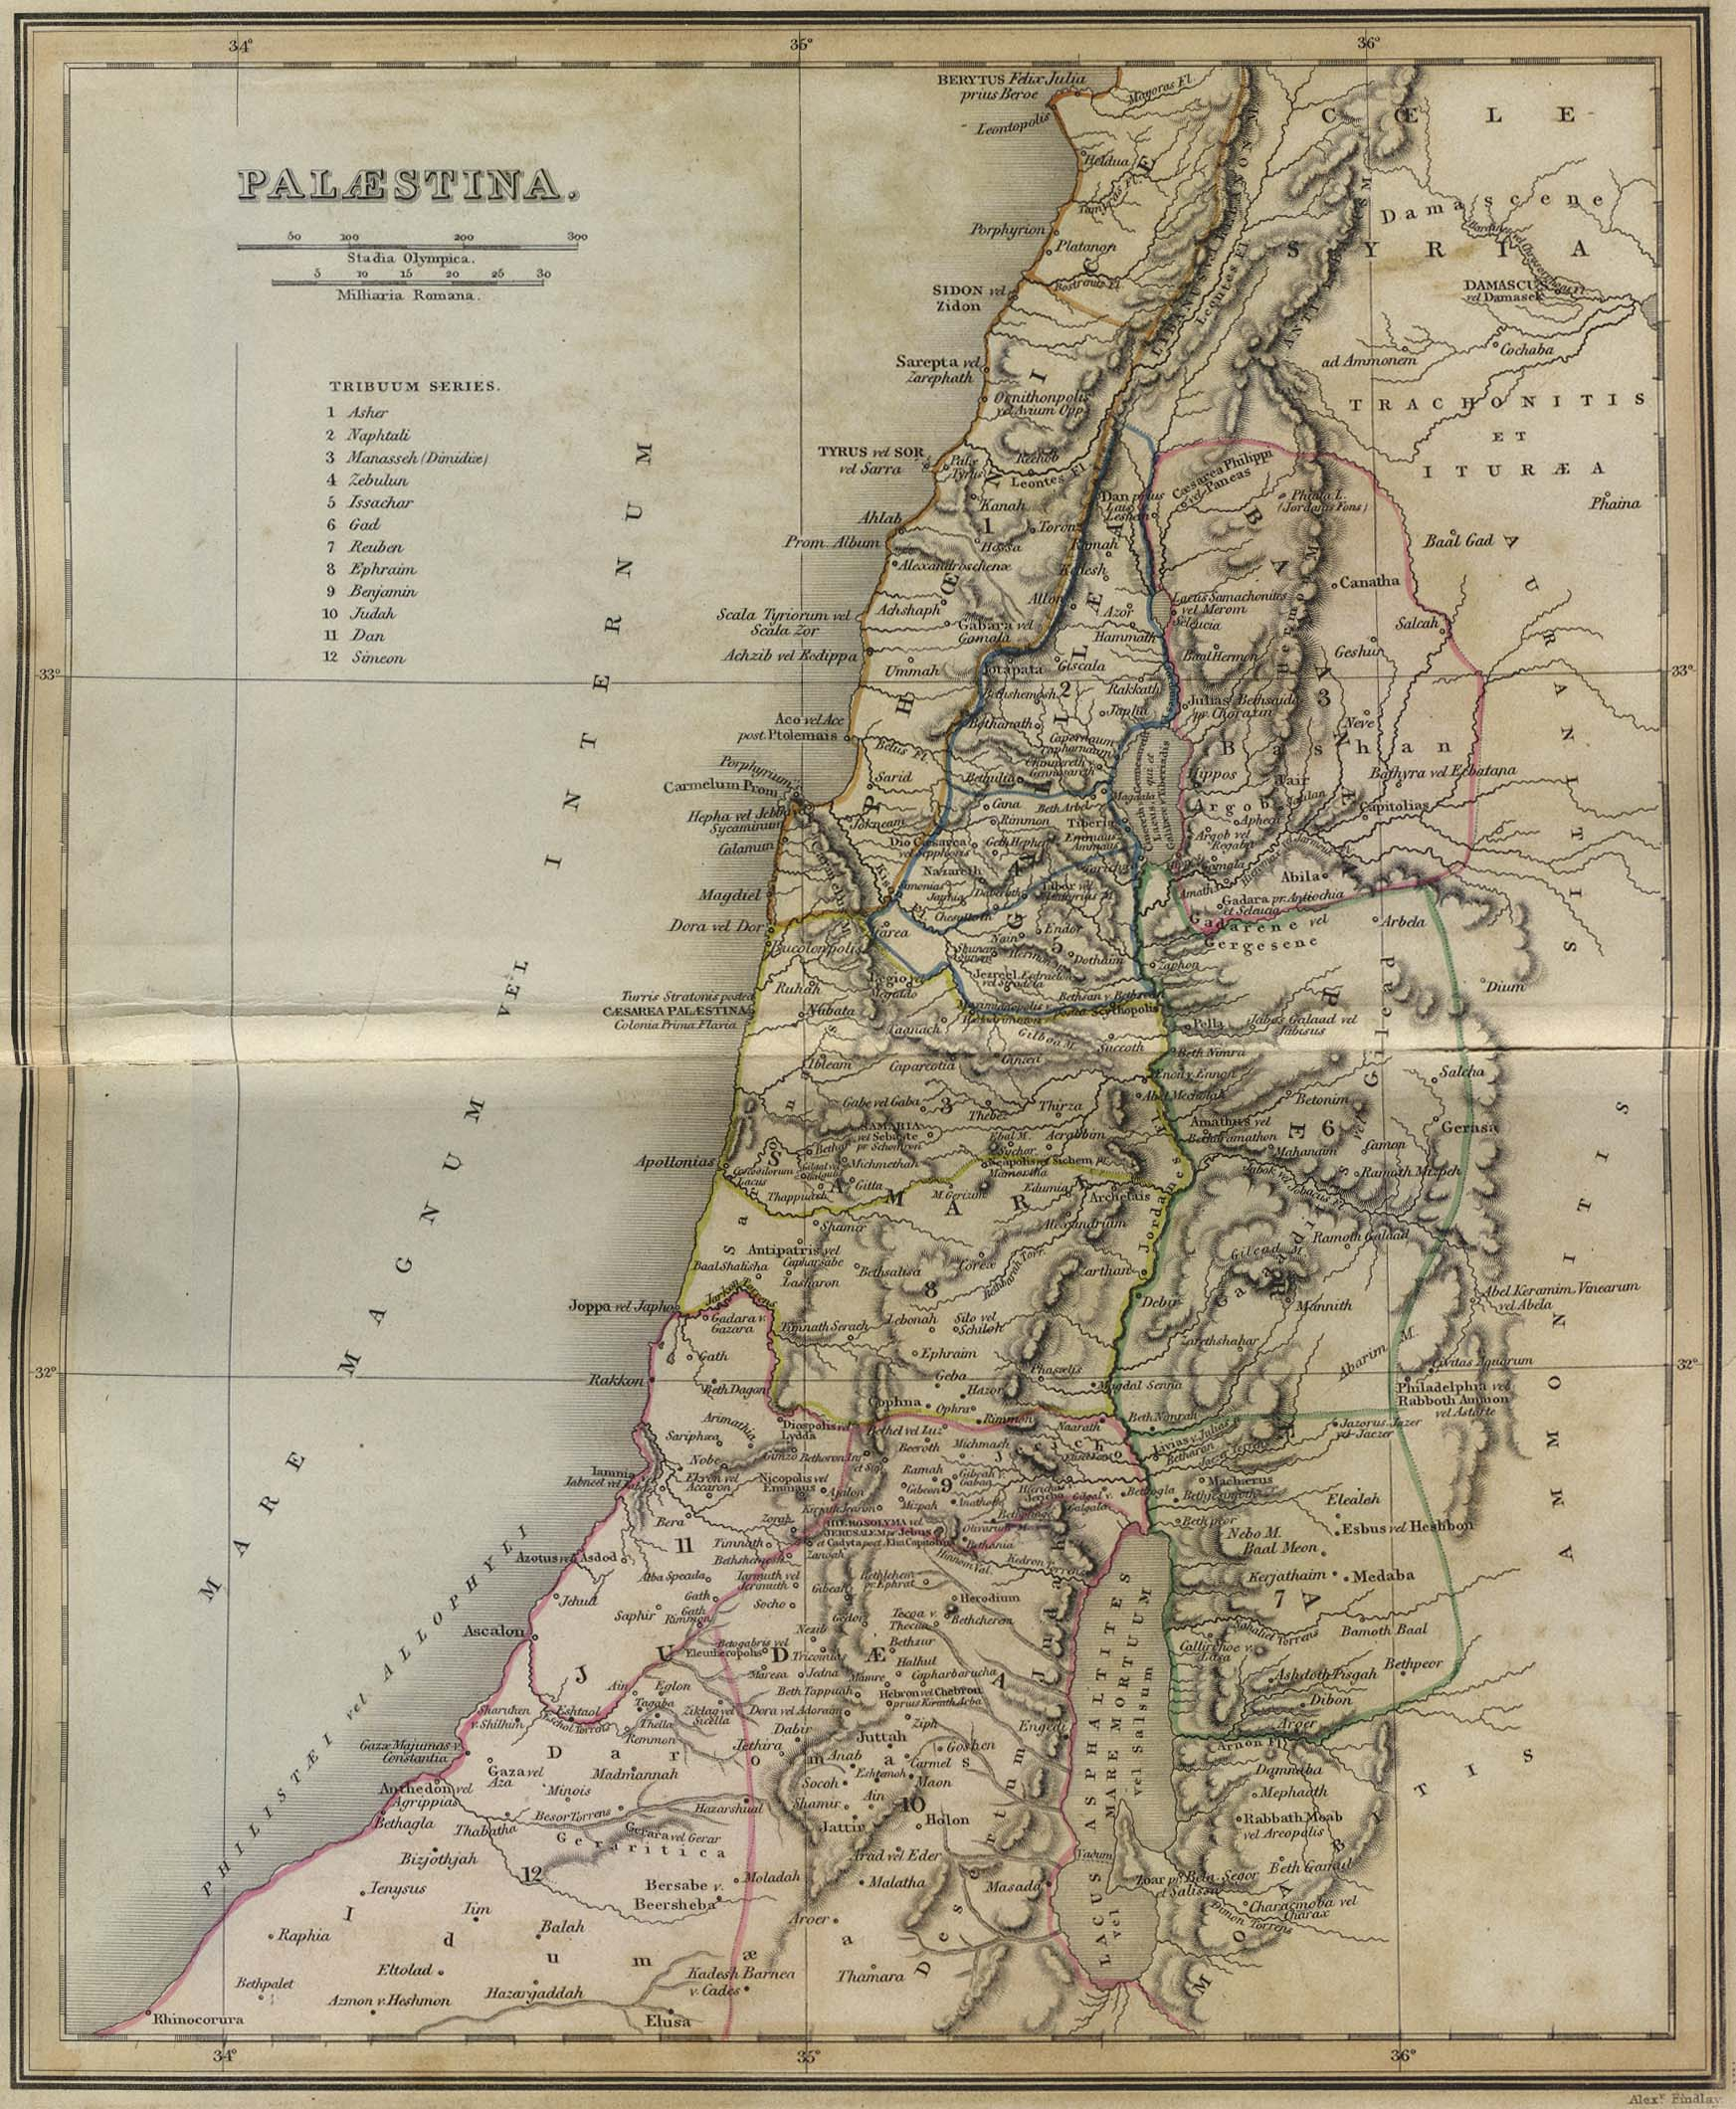 Maps Map Of Ancient Israel on map of israel during jesus' time, current map of israel, map of jerusalem, map of judea, large map of israel, caesarea israel, map of israel and palestine, road map of israel, united kingdom monarchy of israel, map of middle east, map of jordan, map of holy land, photographs of israel, map of west bank barrier, map of israel joshua, map of biblical israel, map of greece, modern day map israel, map of israel today, map of promised land,